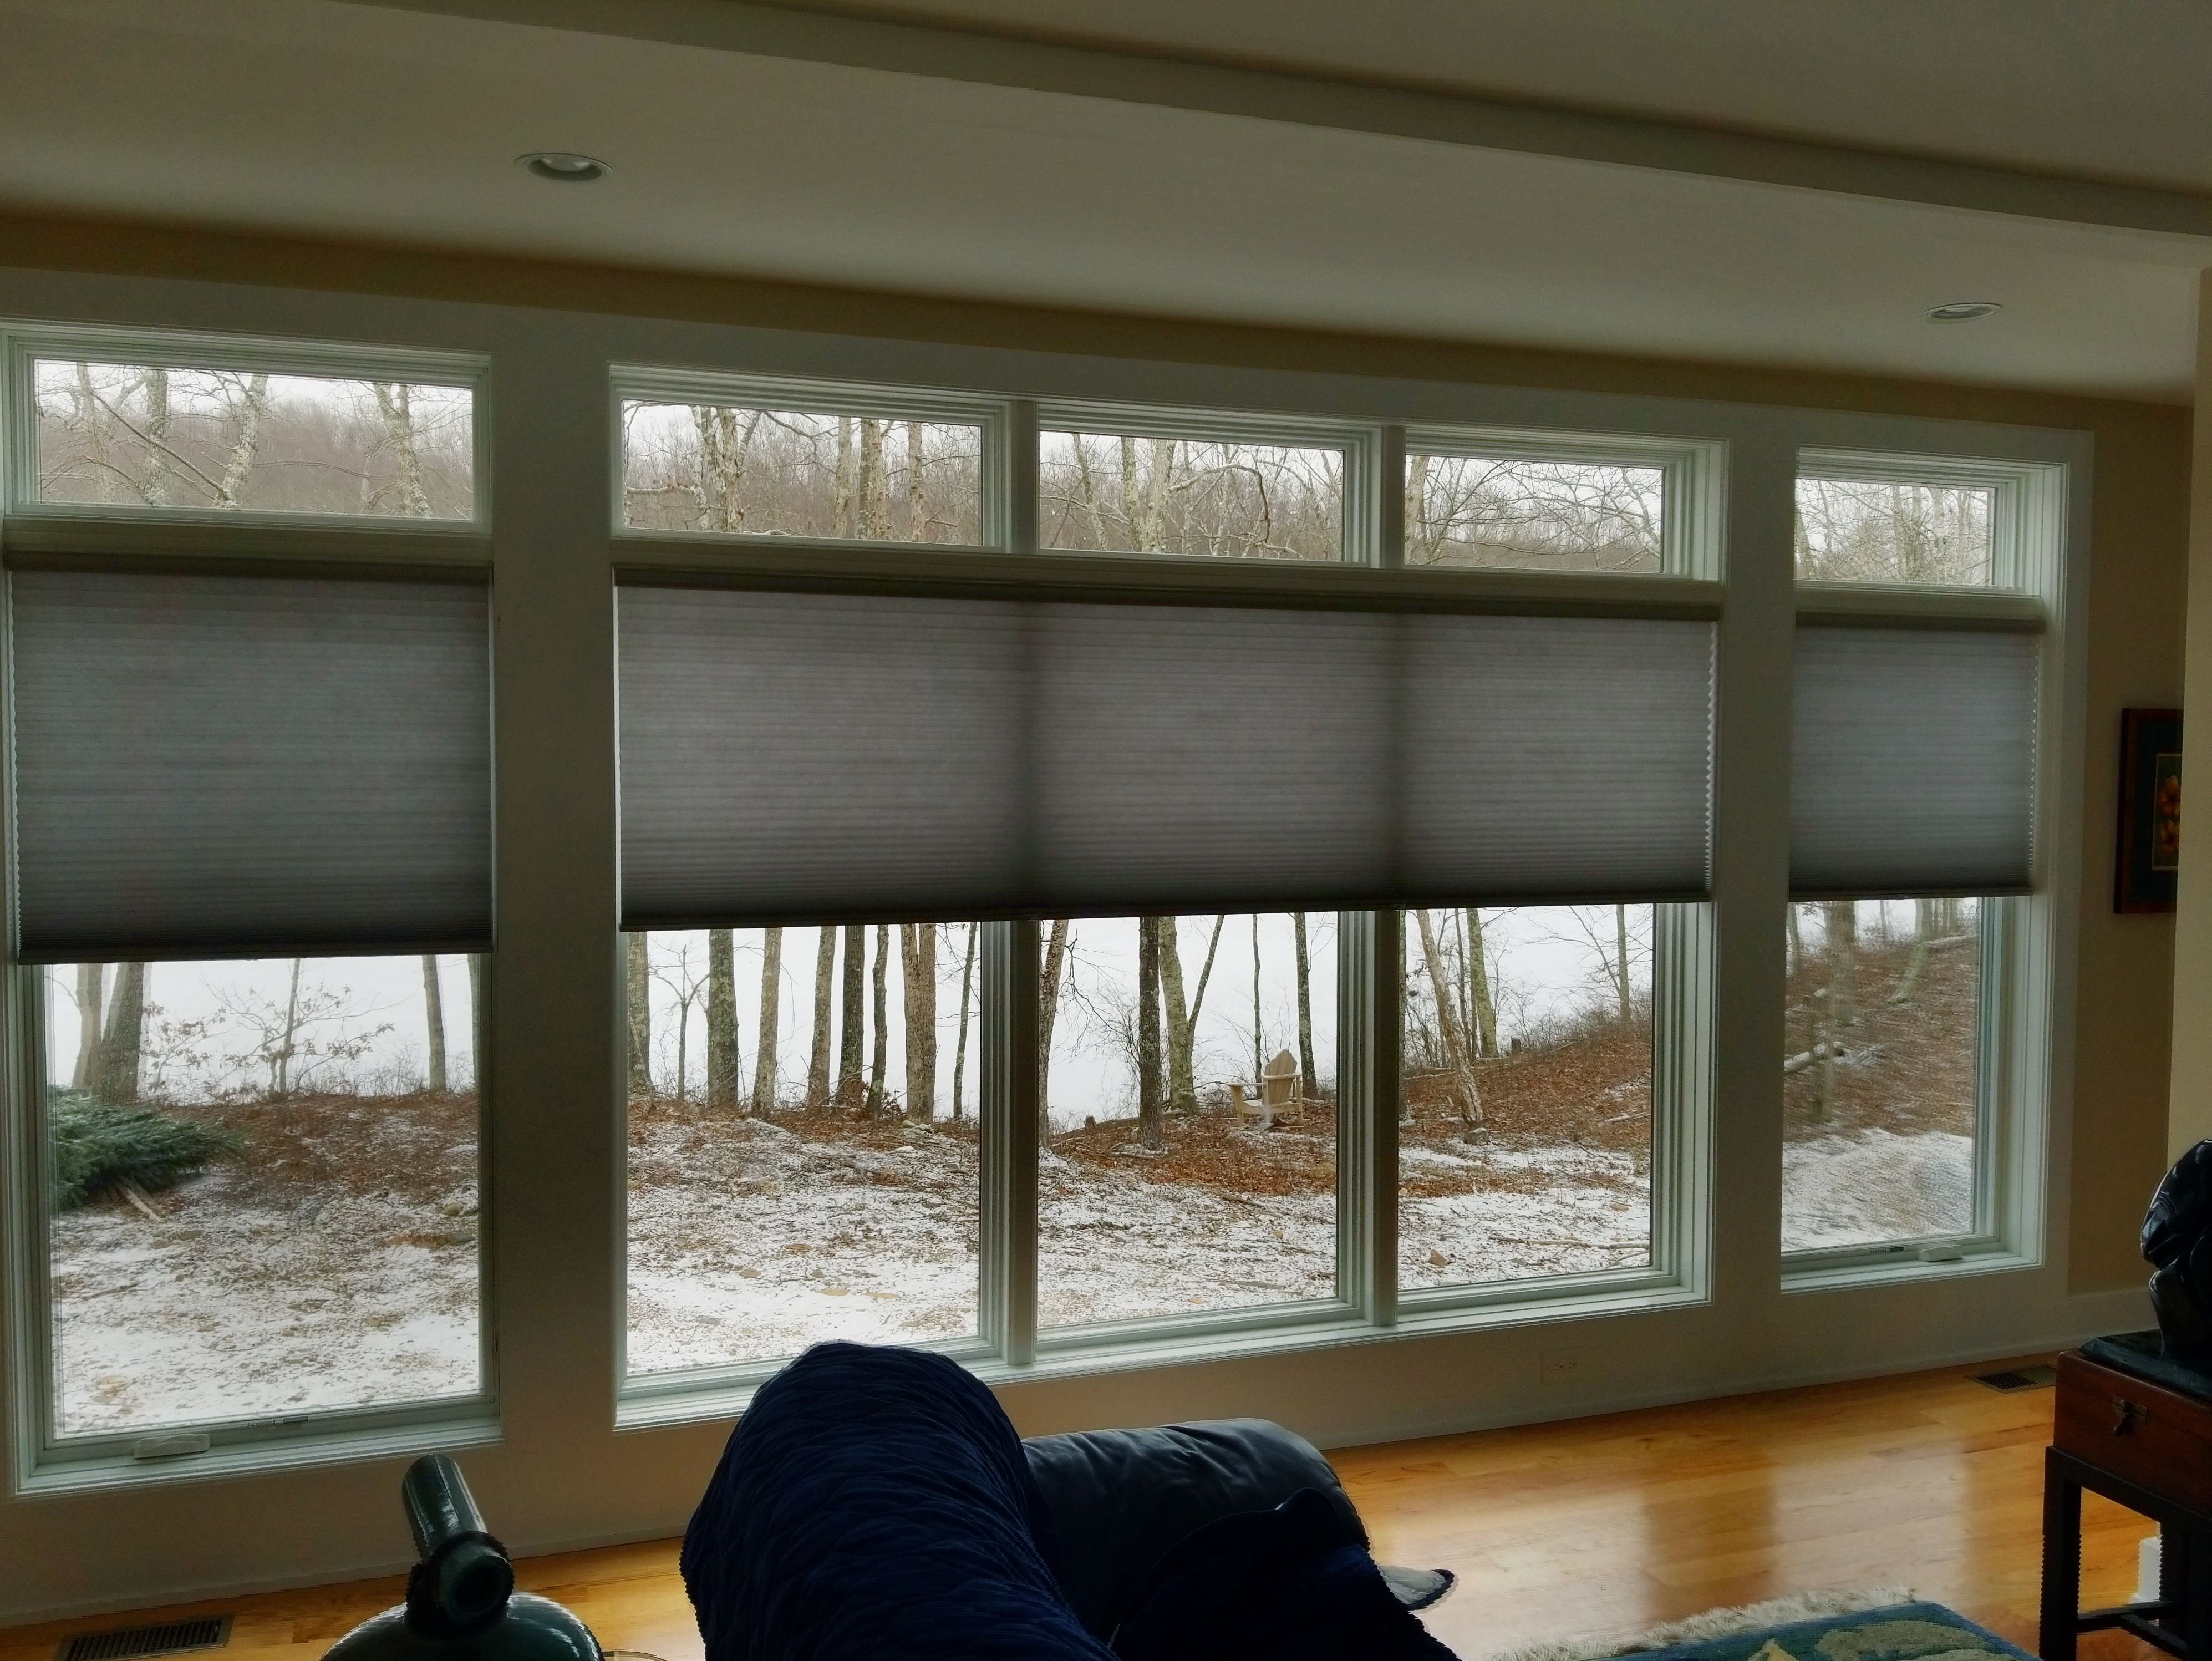 Honeycomb Shades Or Cellular Shades Are An Ideal Solution For Wide And Large Windows With A Variety Of Honeycomb Shades New Homes Cellular Shades Honeycombs